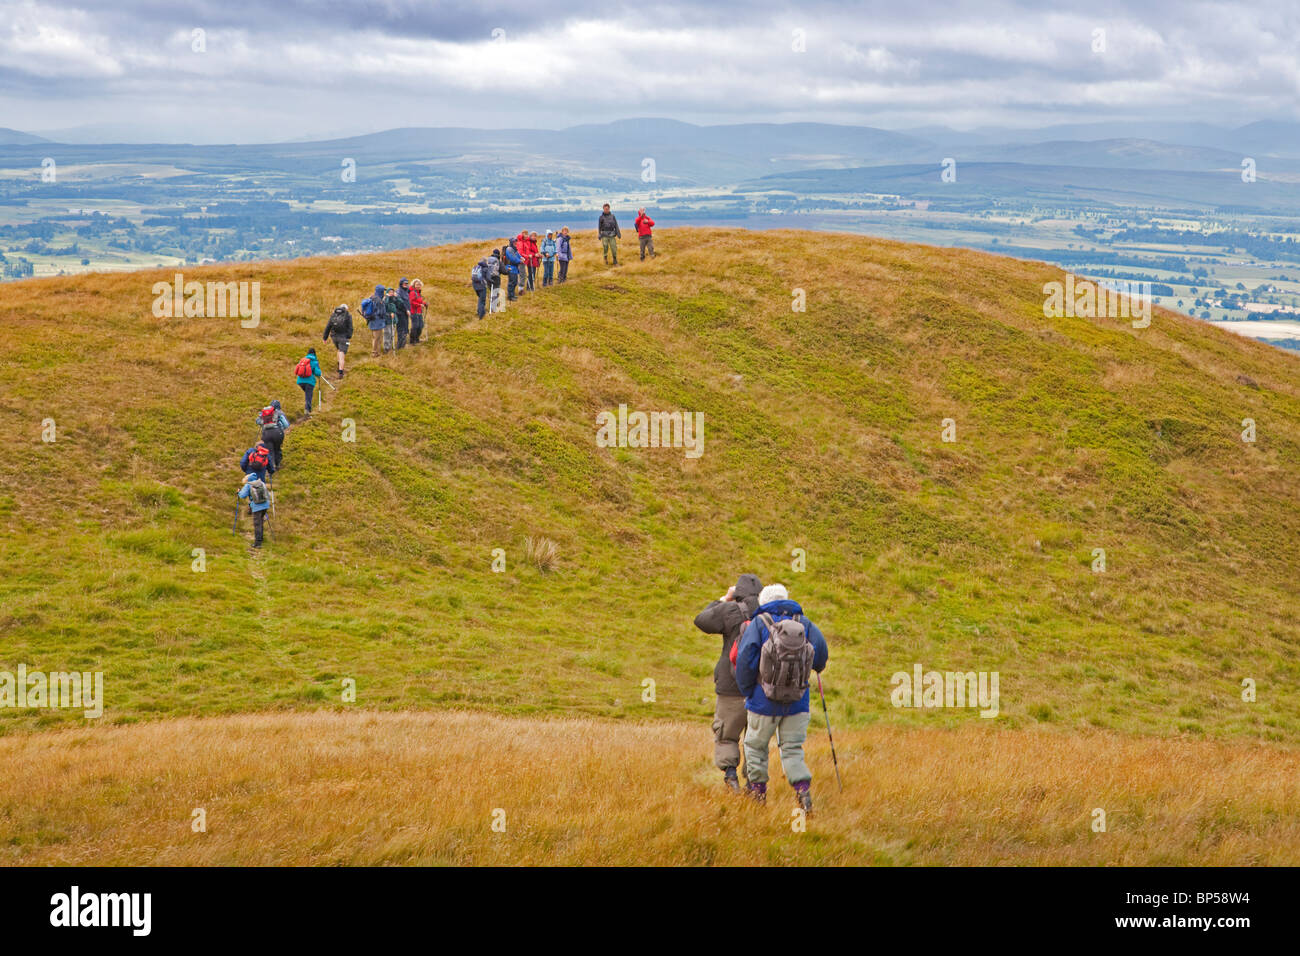 A Rambling Club on Craig Rossie near Auchterarder - Stock Image